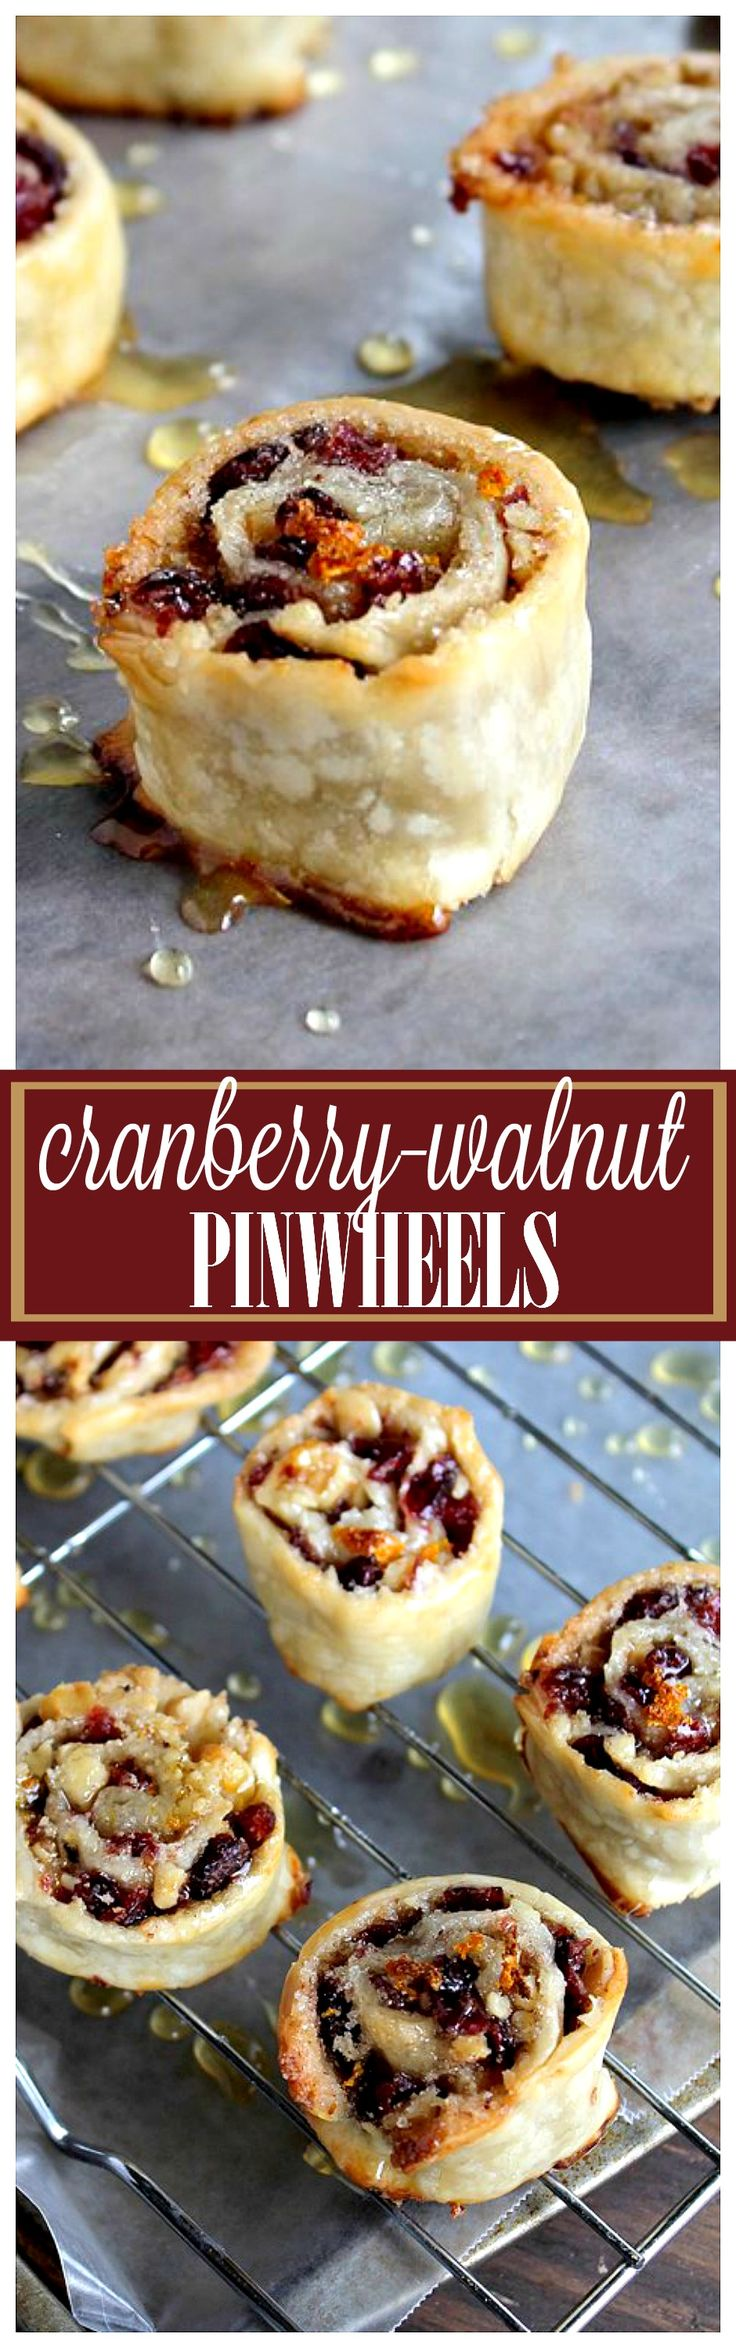 Cranberry and Walnut Pinwheels - My most asked for and loved Holiday…